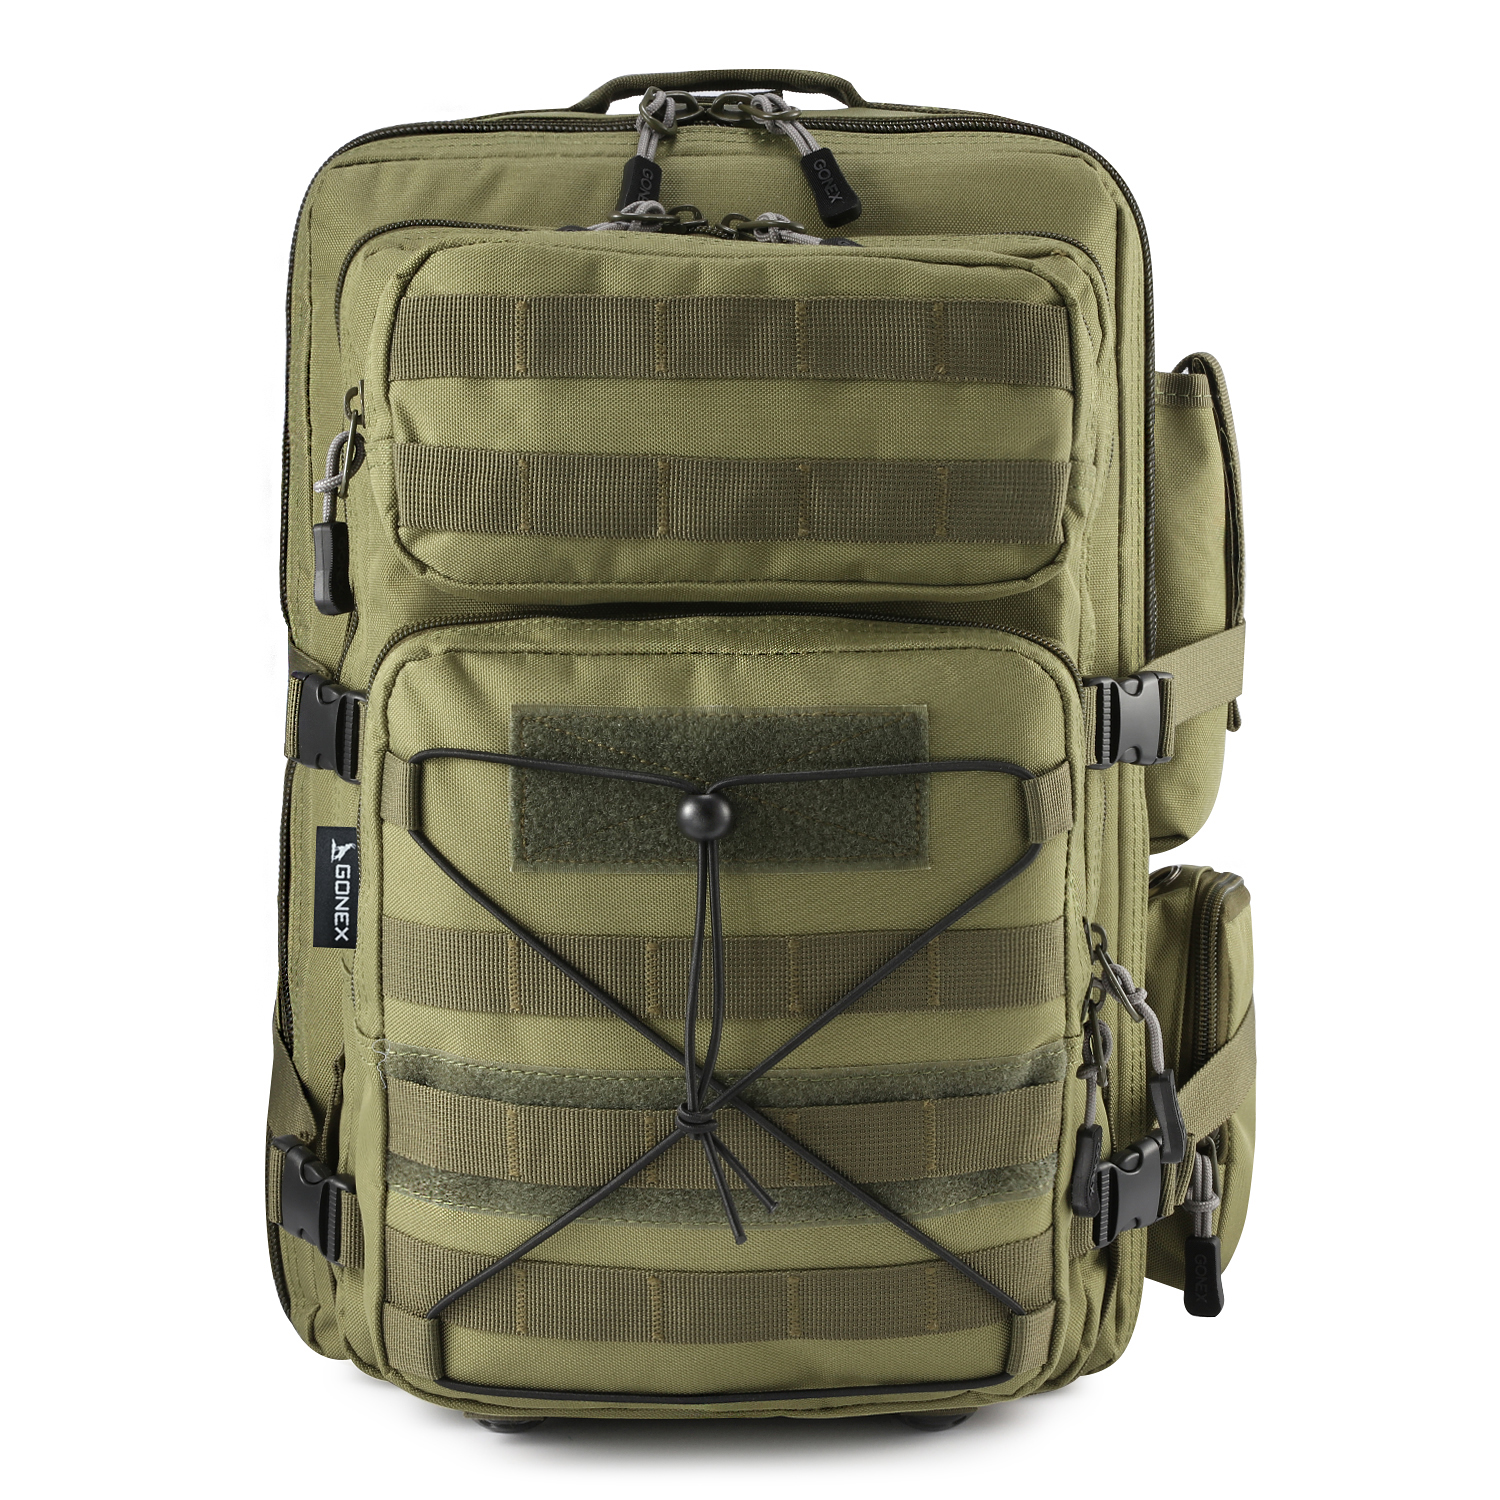 35l Rucksack 35l Molle Tactical Outdoor Military Assault Backpack